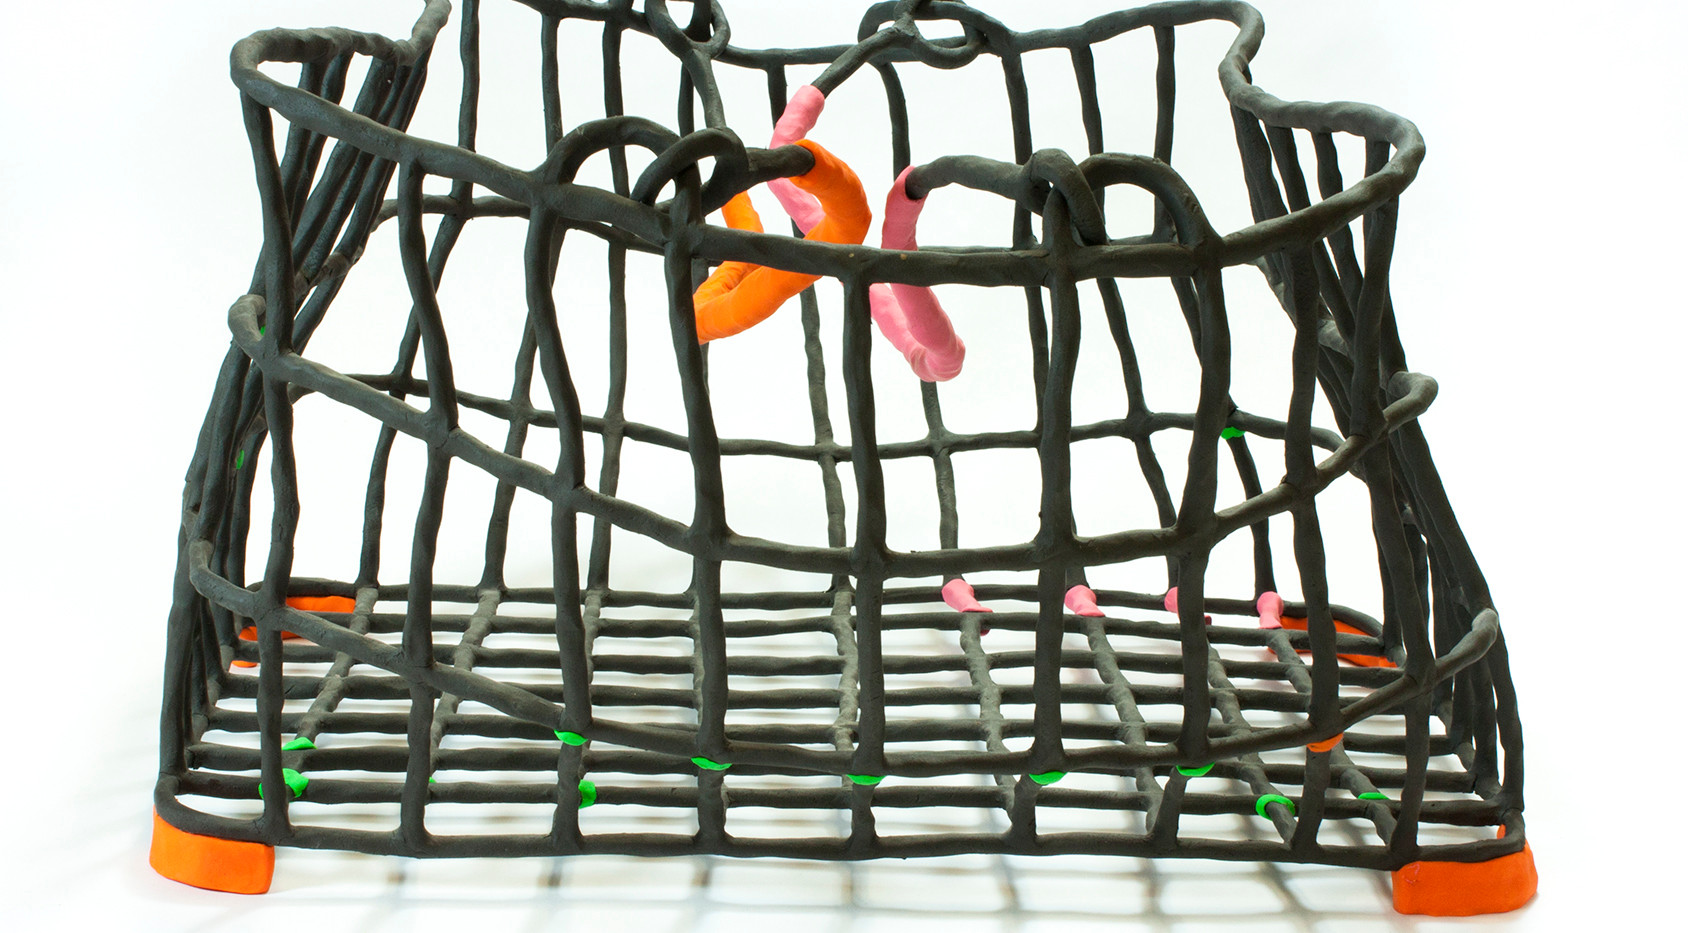 Basket with Pink, Green, and Orange